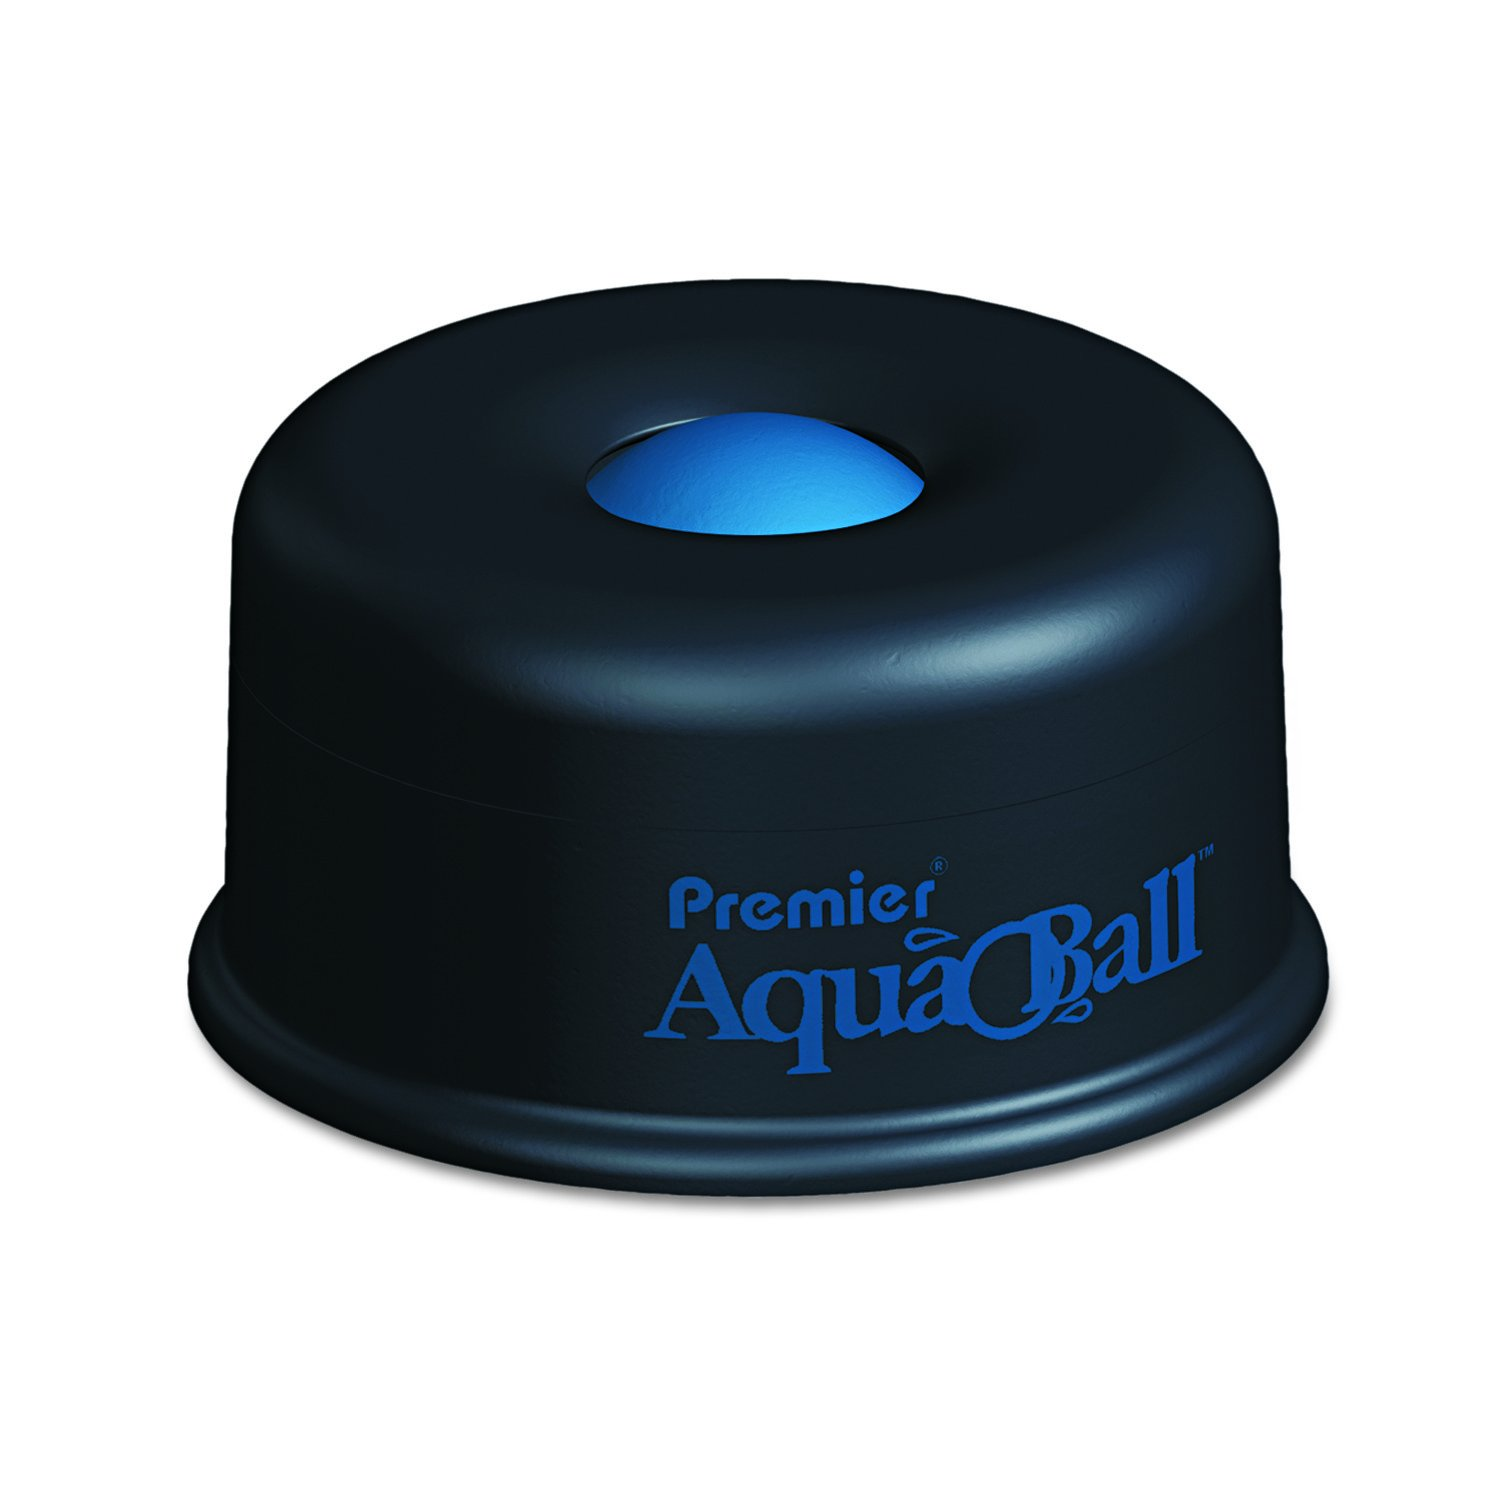 Martin Yale AQ701G Premier AquaBall All Purpose Moistener, Black/Blue; Eliminates the Need for Sponges, Rubber Fingers, or Unsanitary Licking of Fingers